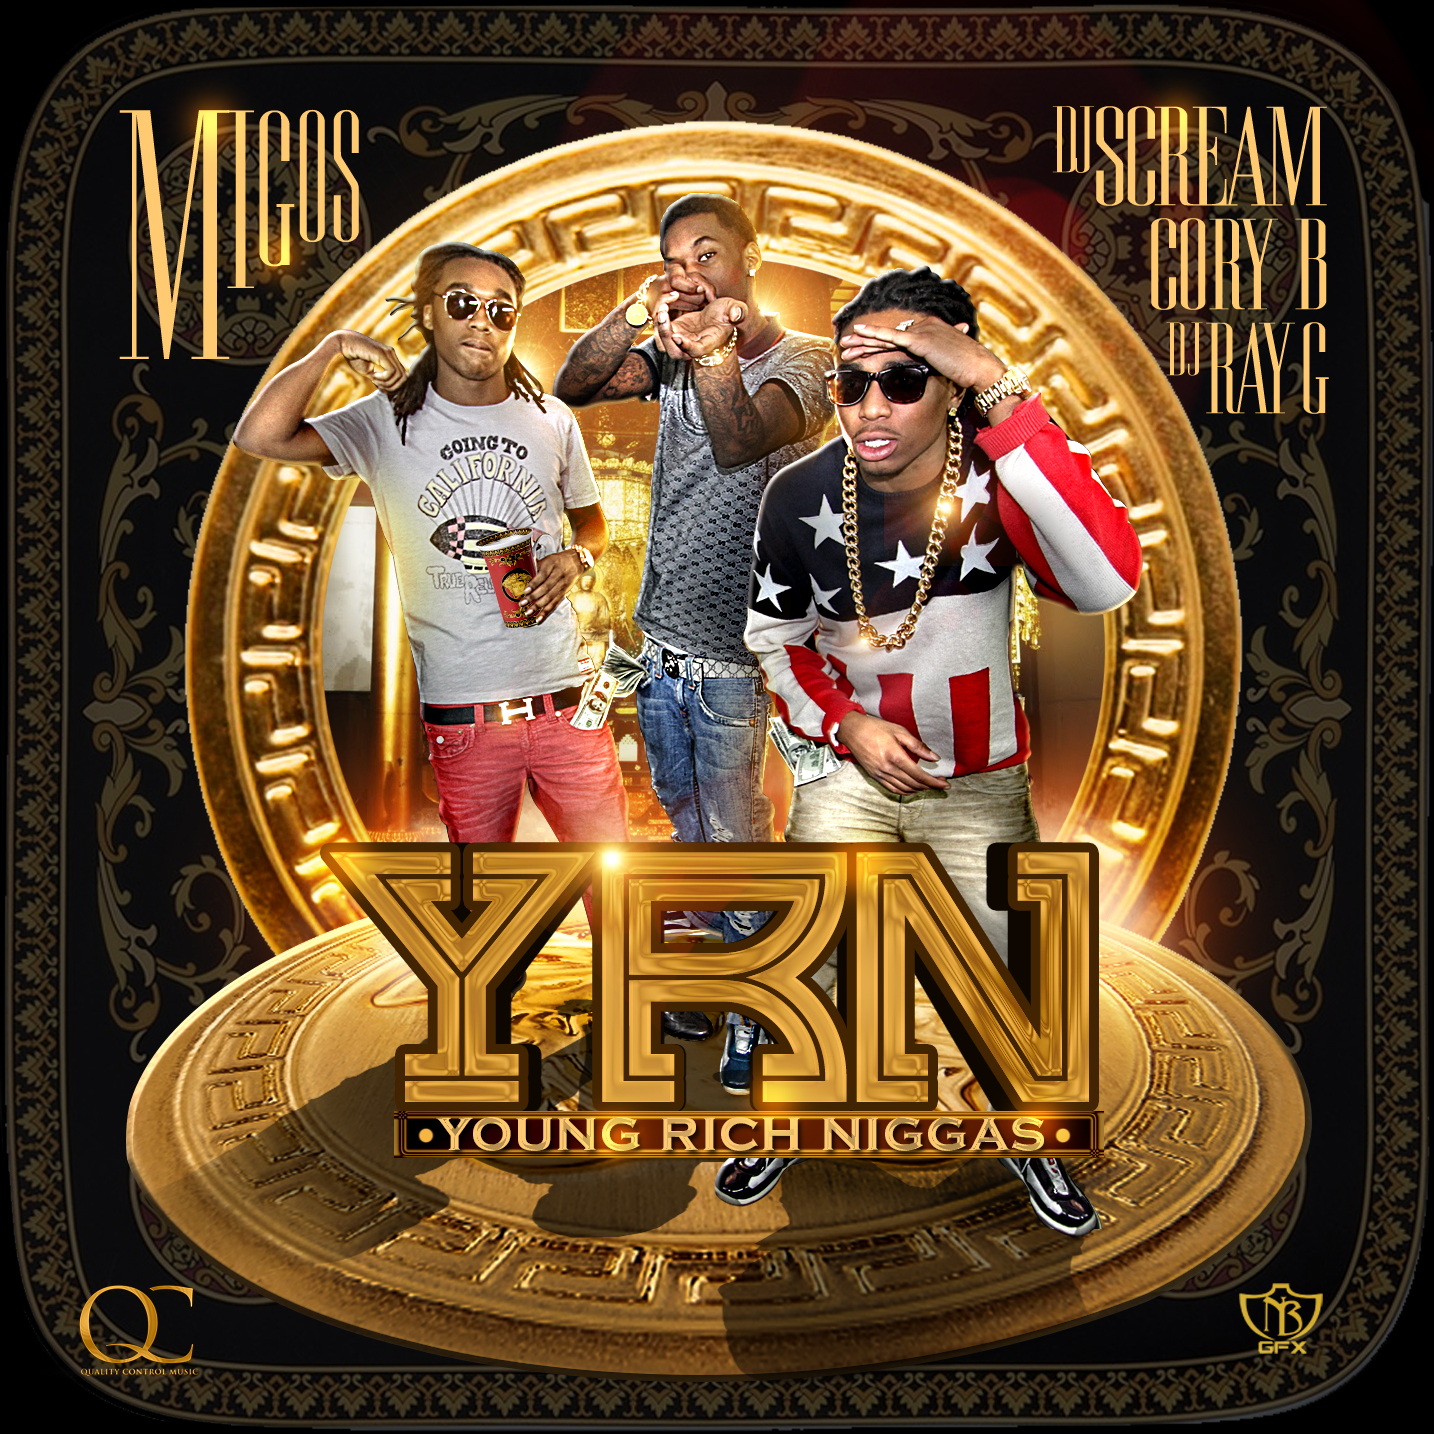 Migos Young Rich Niggas